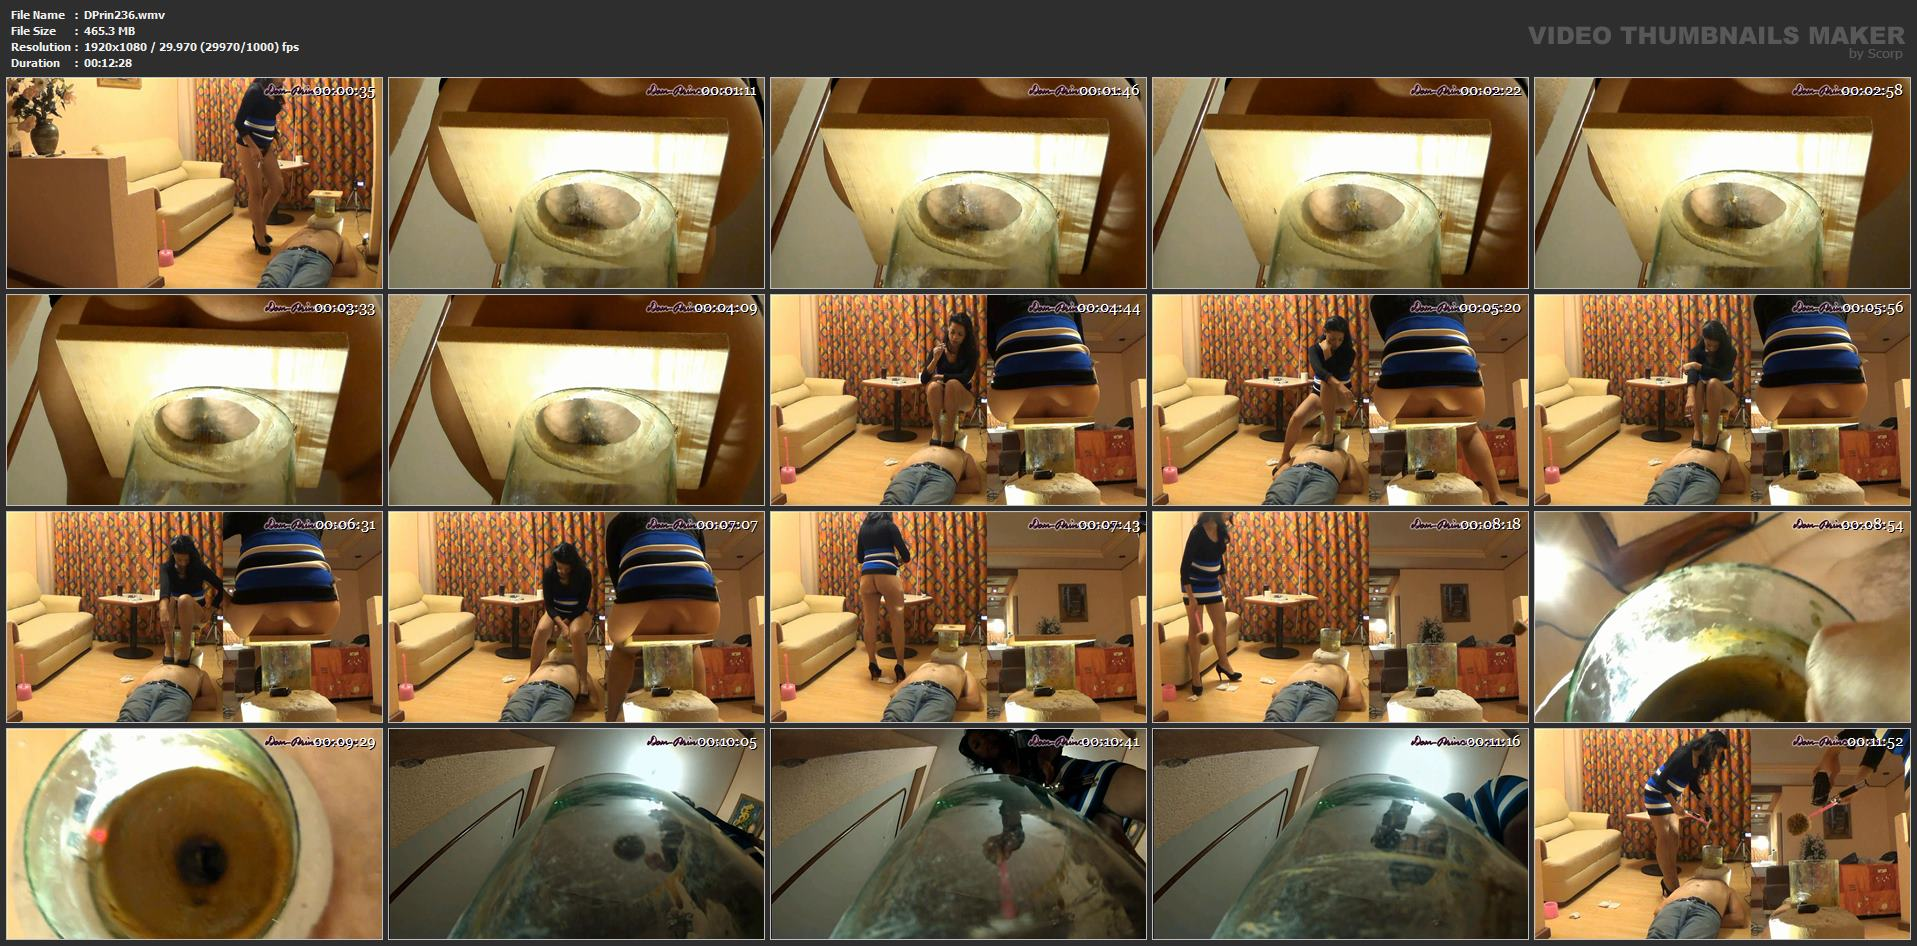 [DOM-PRINCESS] The Poop Collector Part 10 Diana [FULL HD][1080p][WMV]